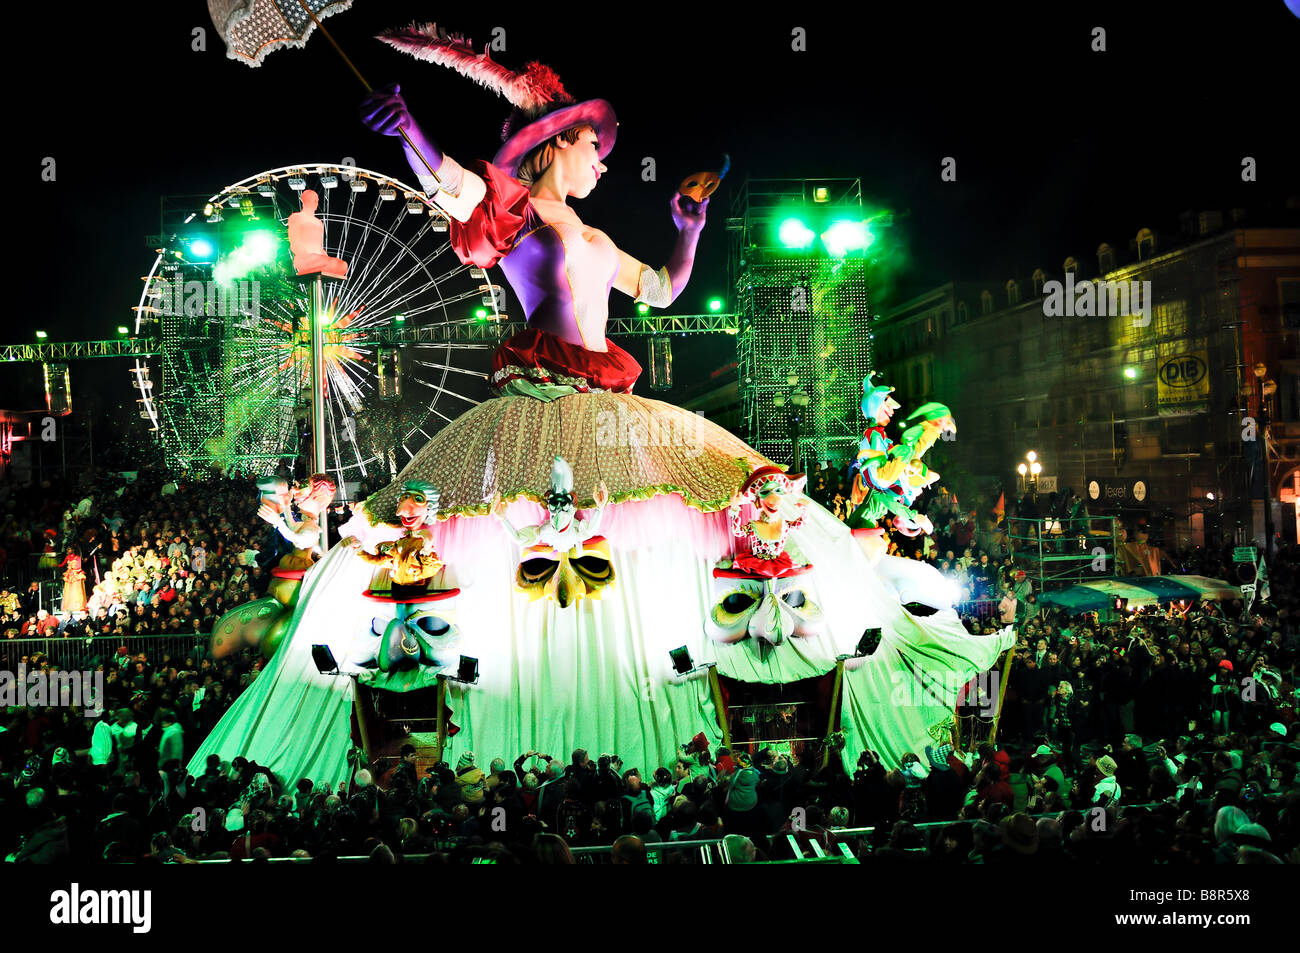 Nice France, Public Events, Carnival Parade, Huge Floats on Street at Night - Stock Image